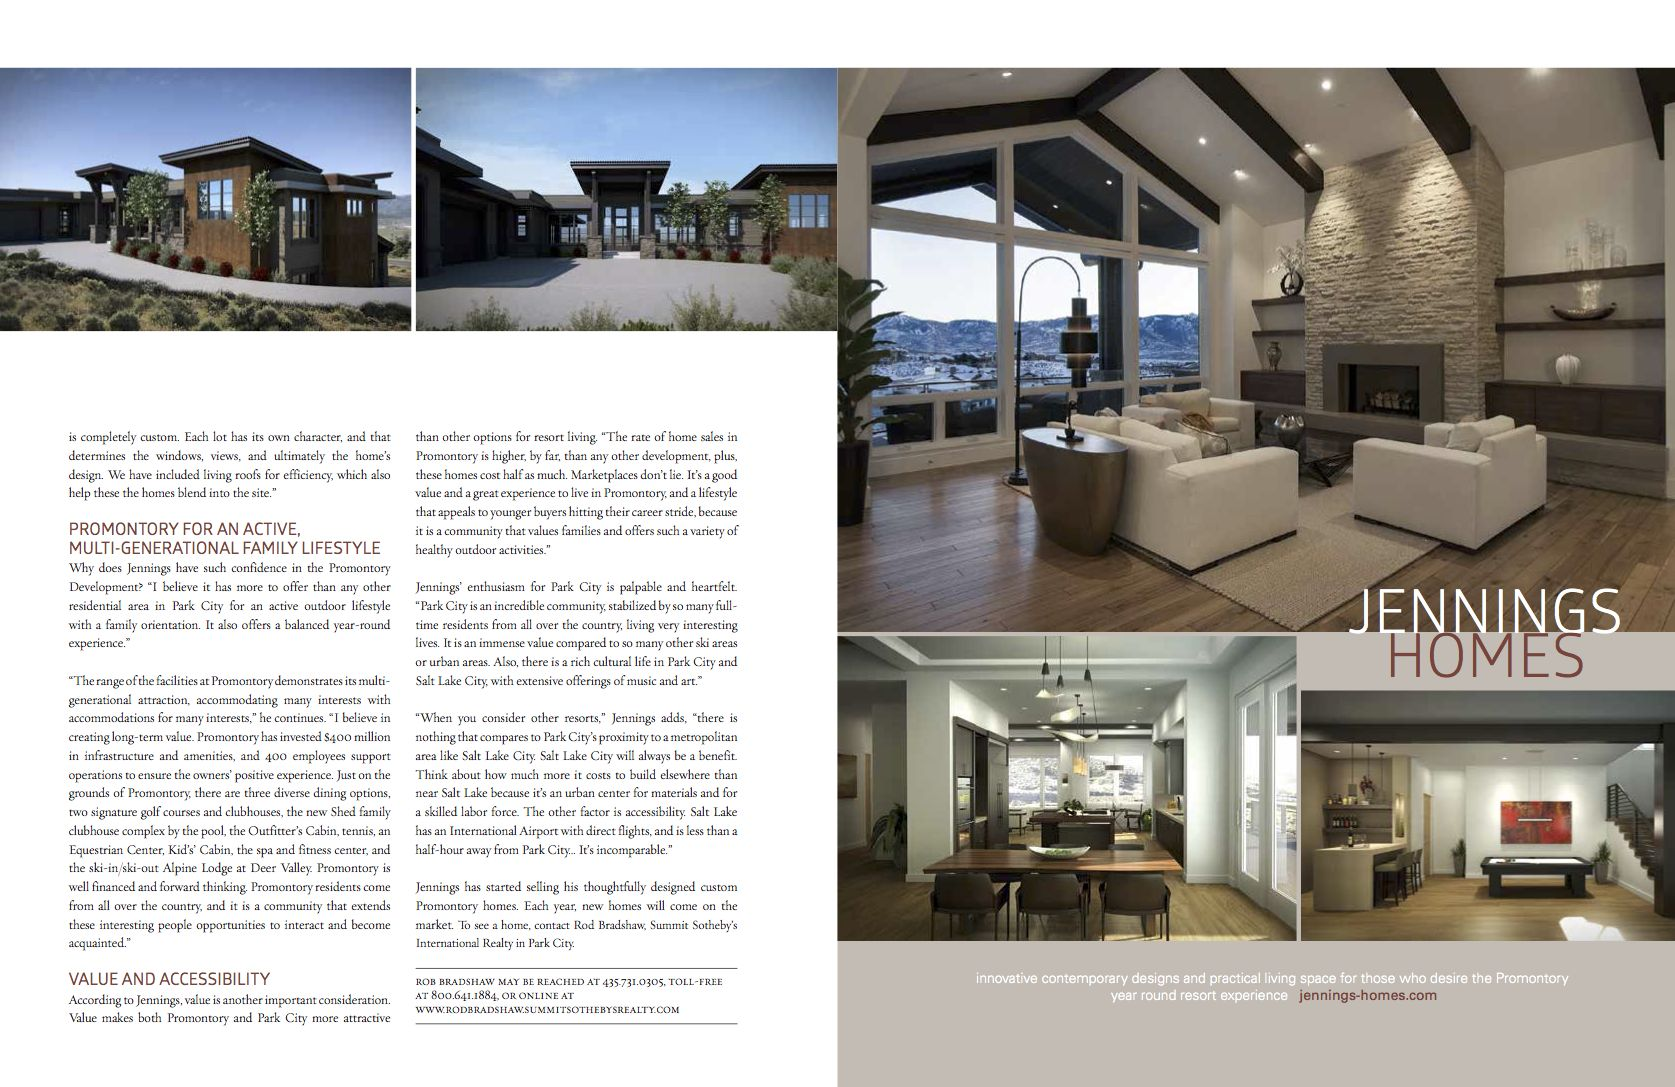 Western Home Journal Summer 2014 | Jennings Homes